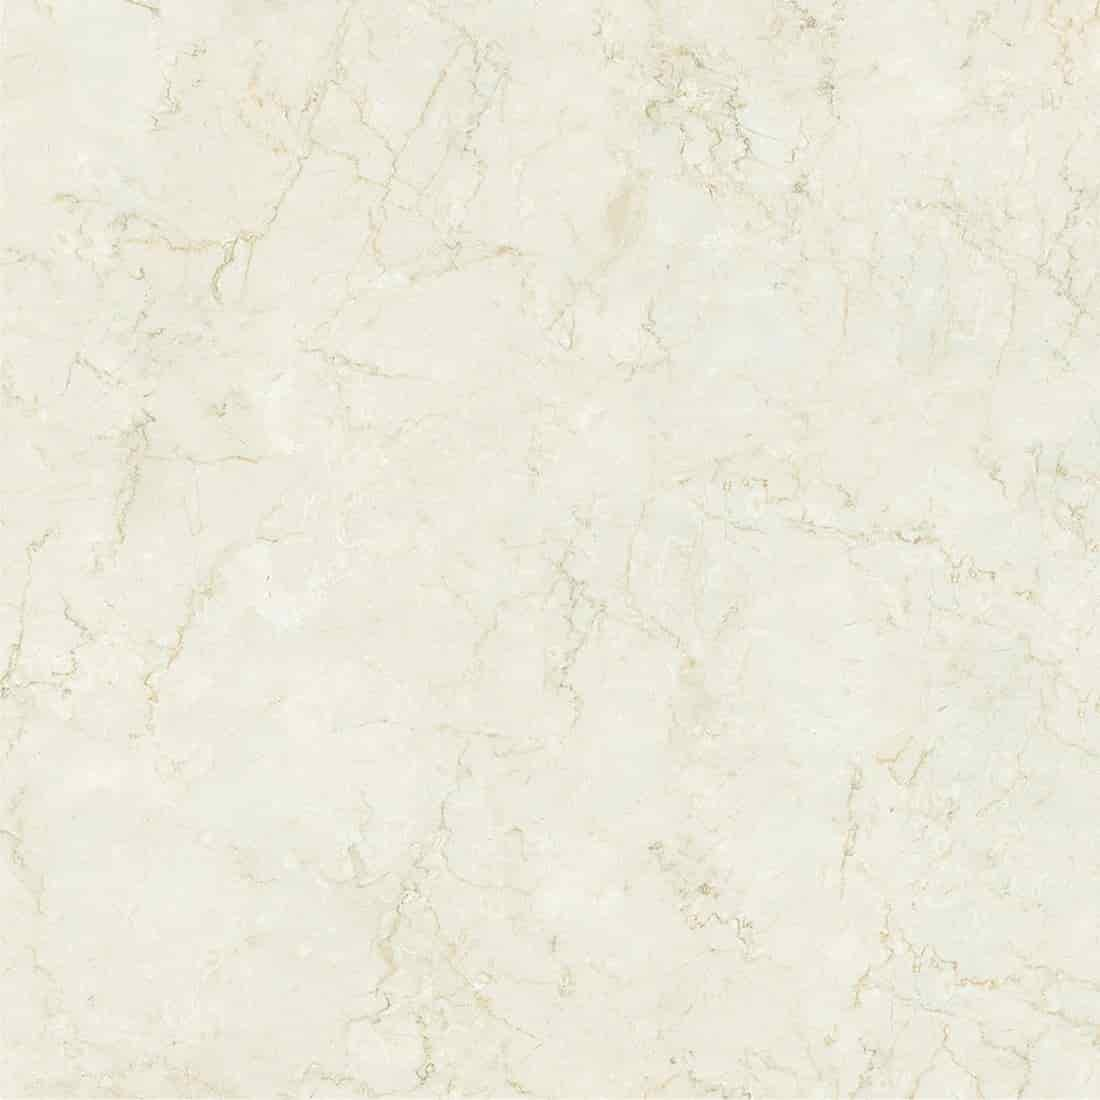 Johnson Beige Botticino 60 X Cm Glazed Vitrified Tile Off White Hrj9822118 Features Price Reviews Online In India Justdial